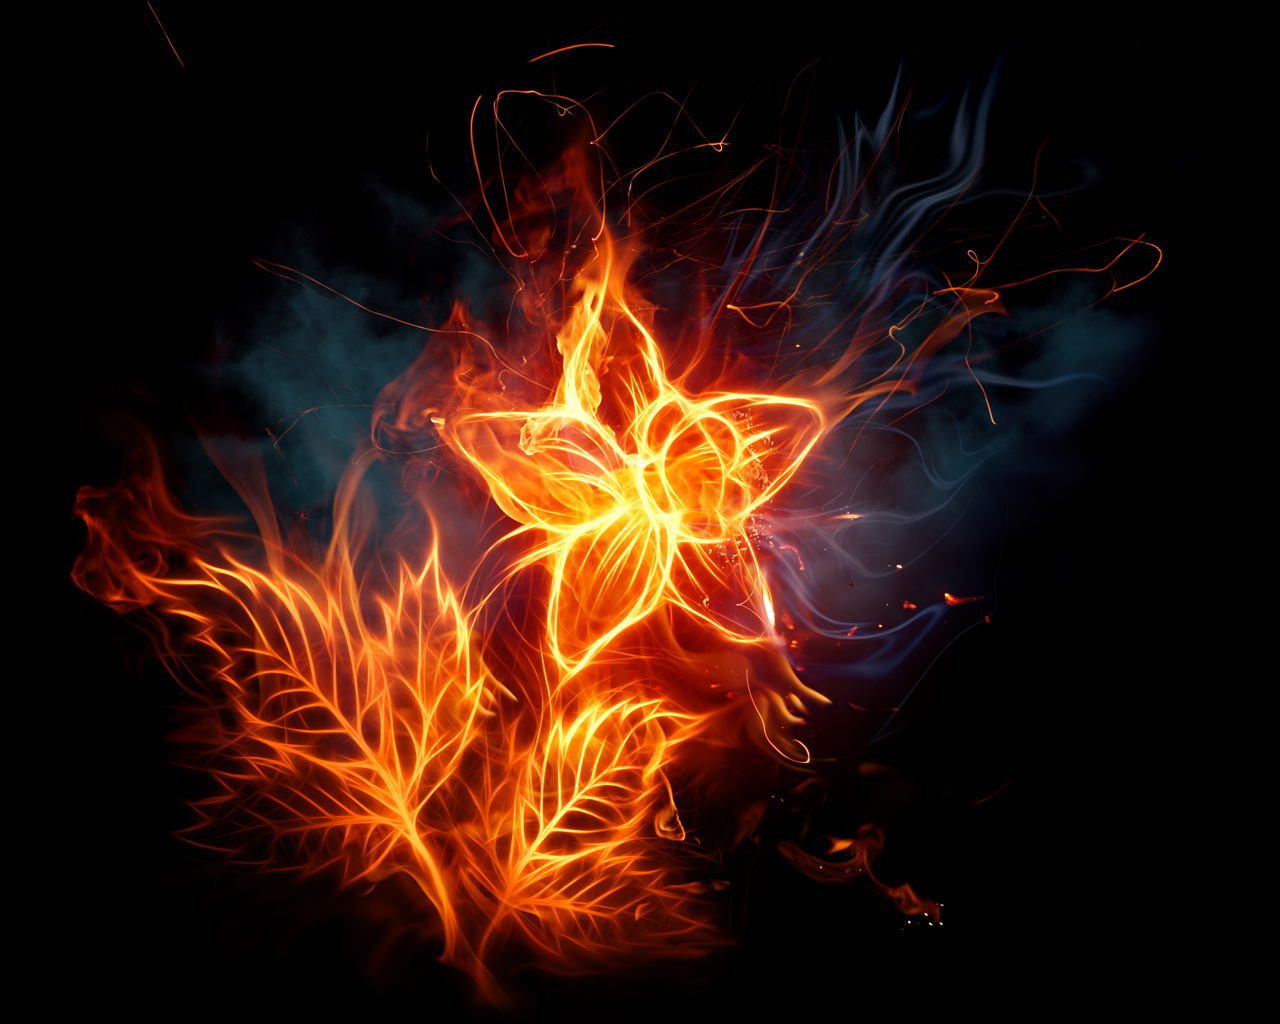 hd wallpapers desktop fire - photo #1